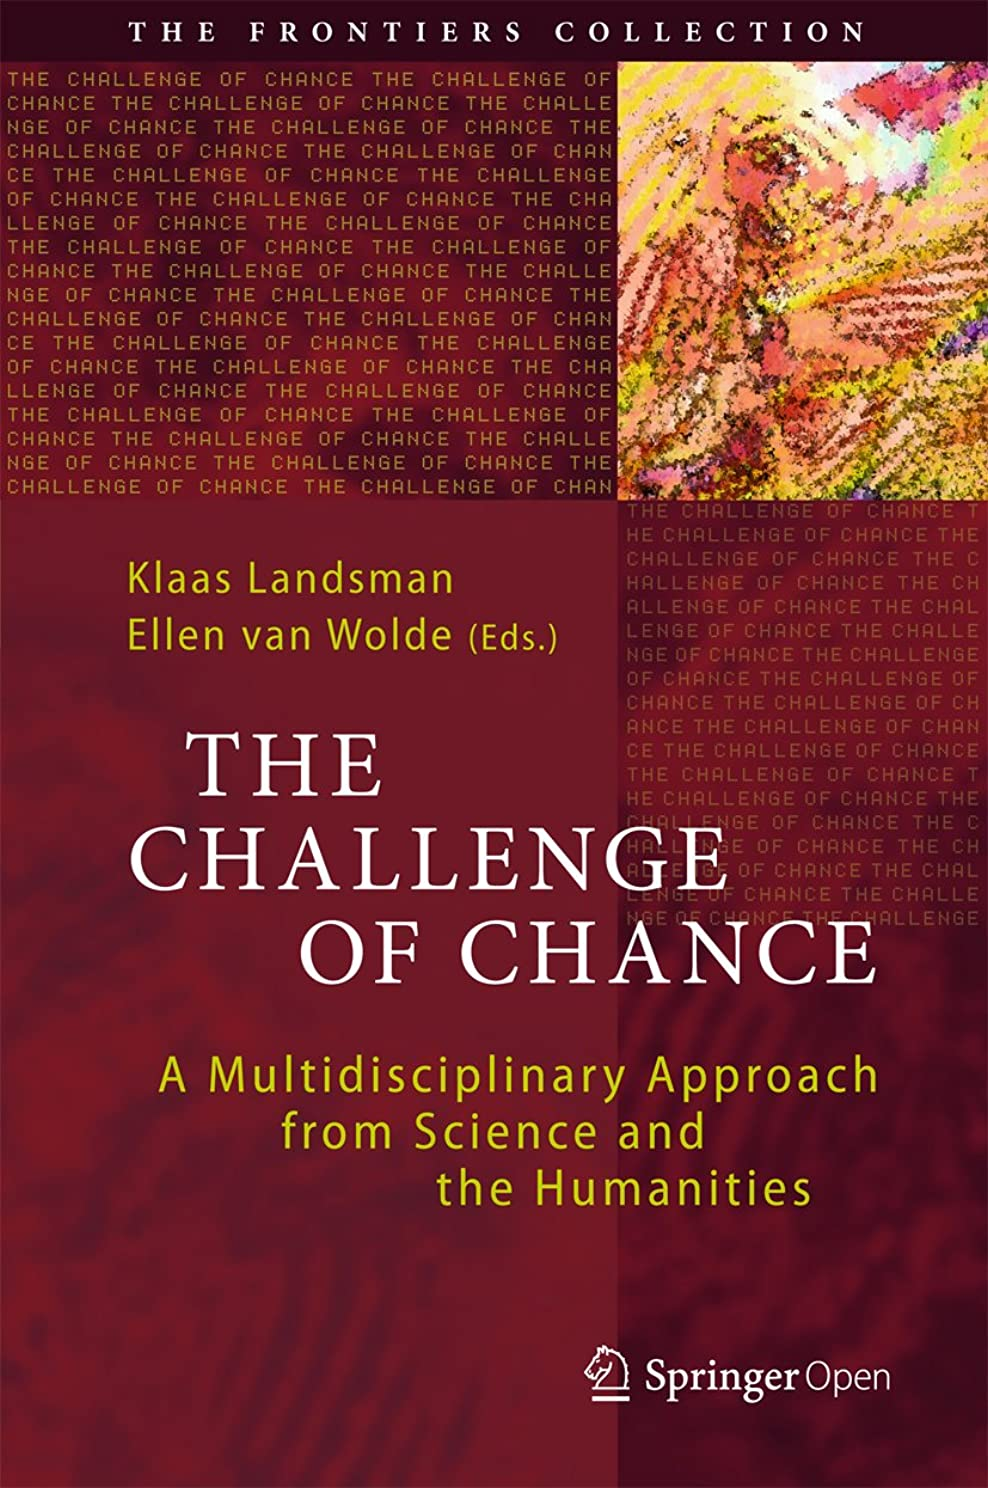 雰囲気冷えるローストThe Challenge of Chance: A Multidisciplinary Approach from Science and the Humanities (The Frontiers Collection) (English Edition)